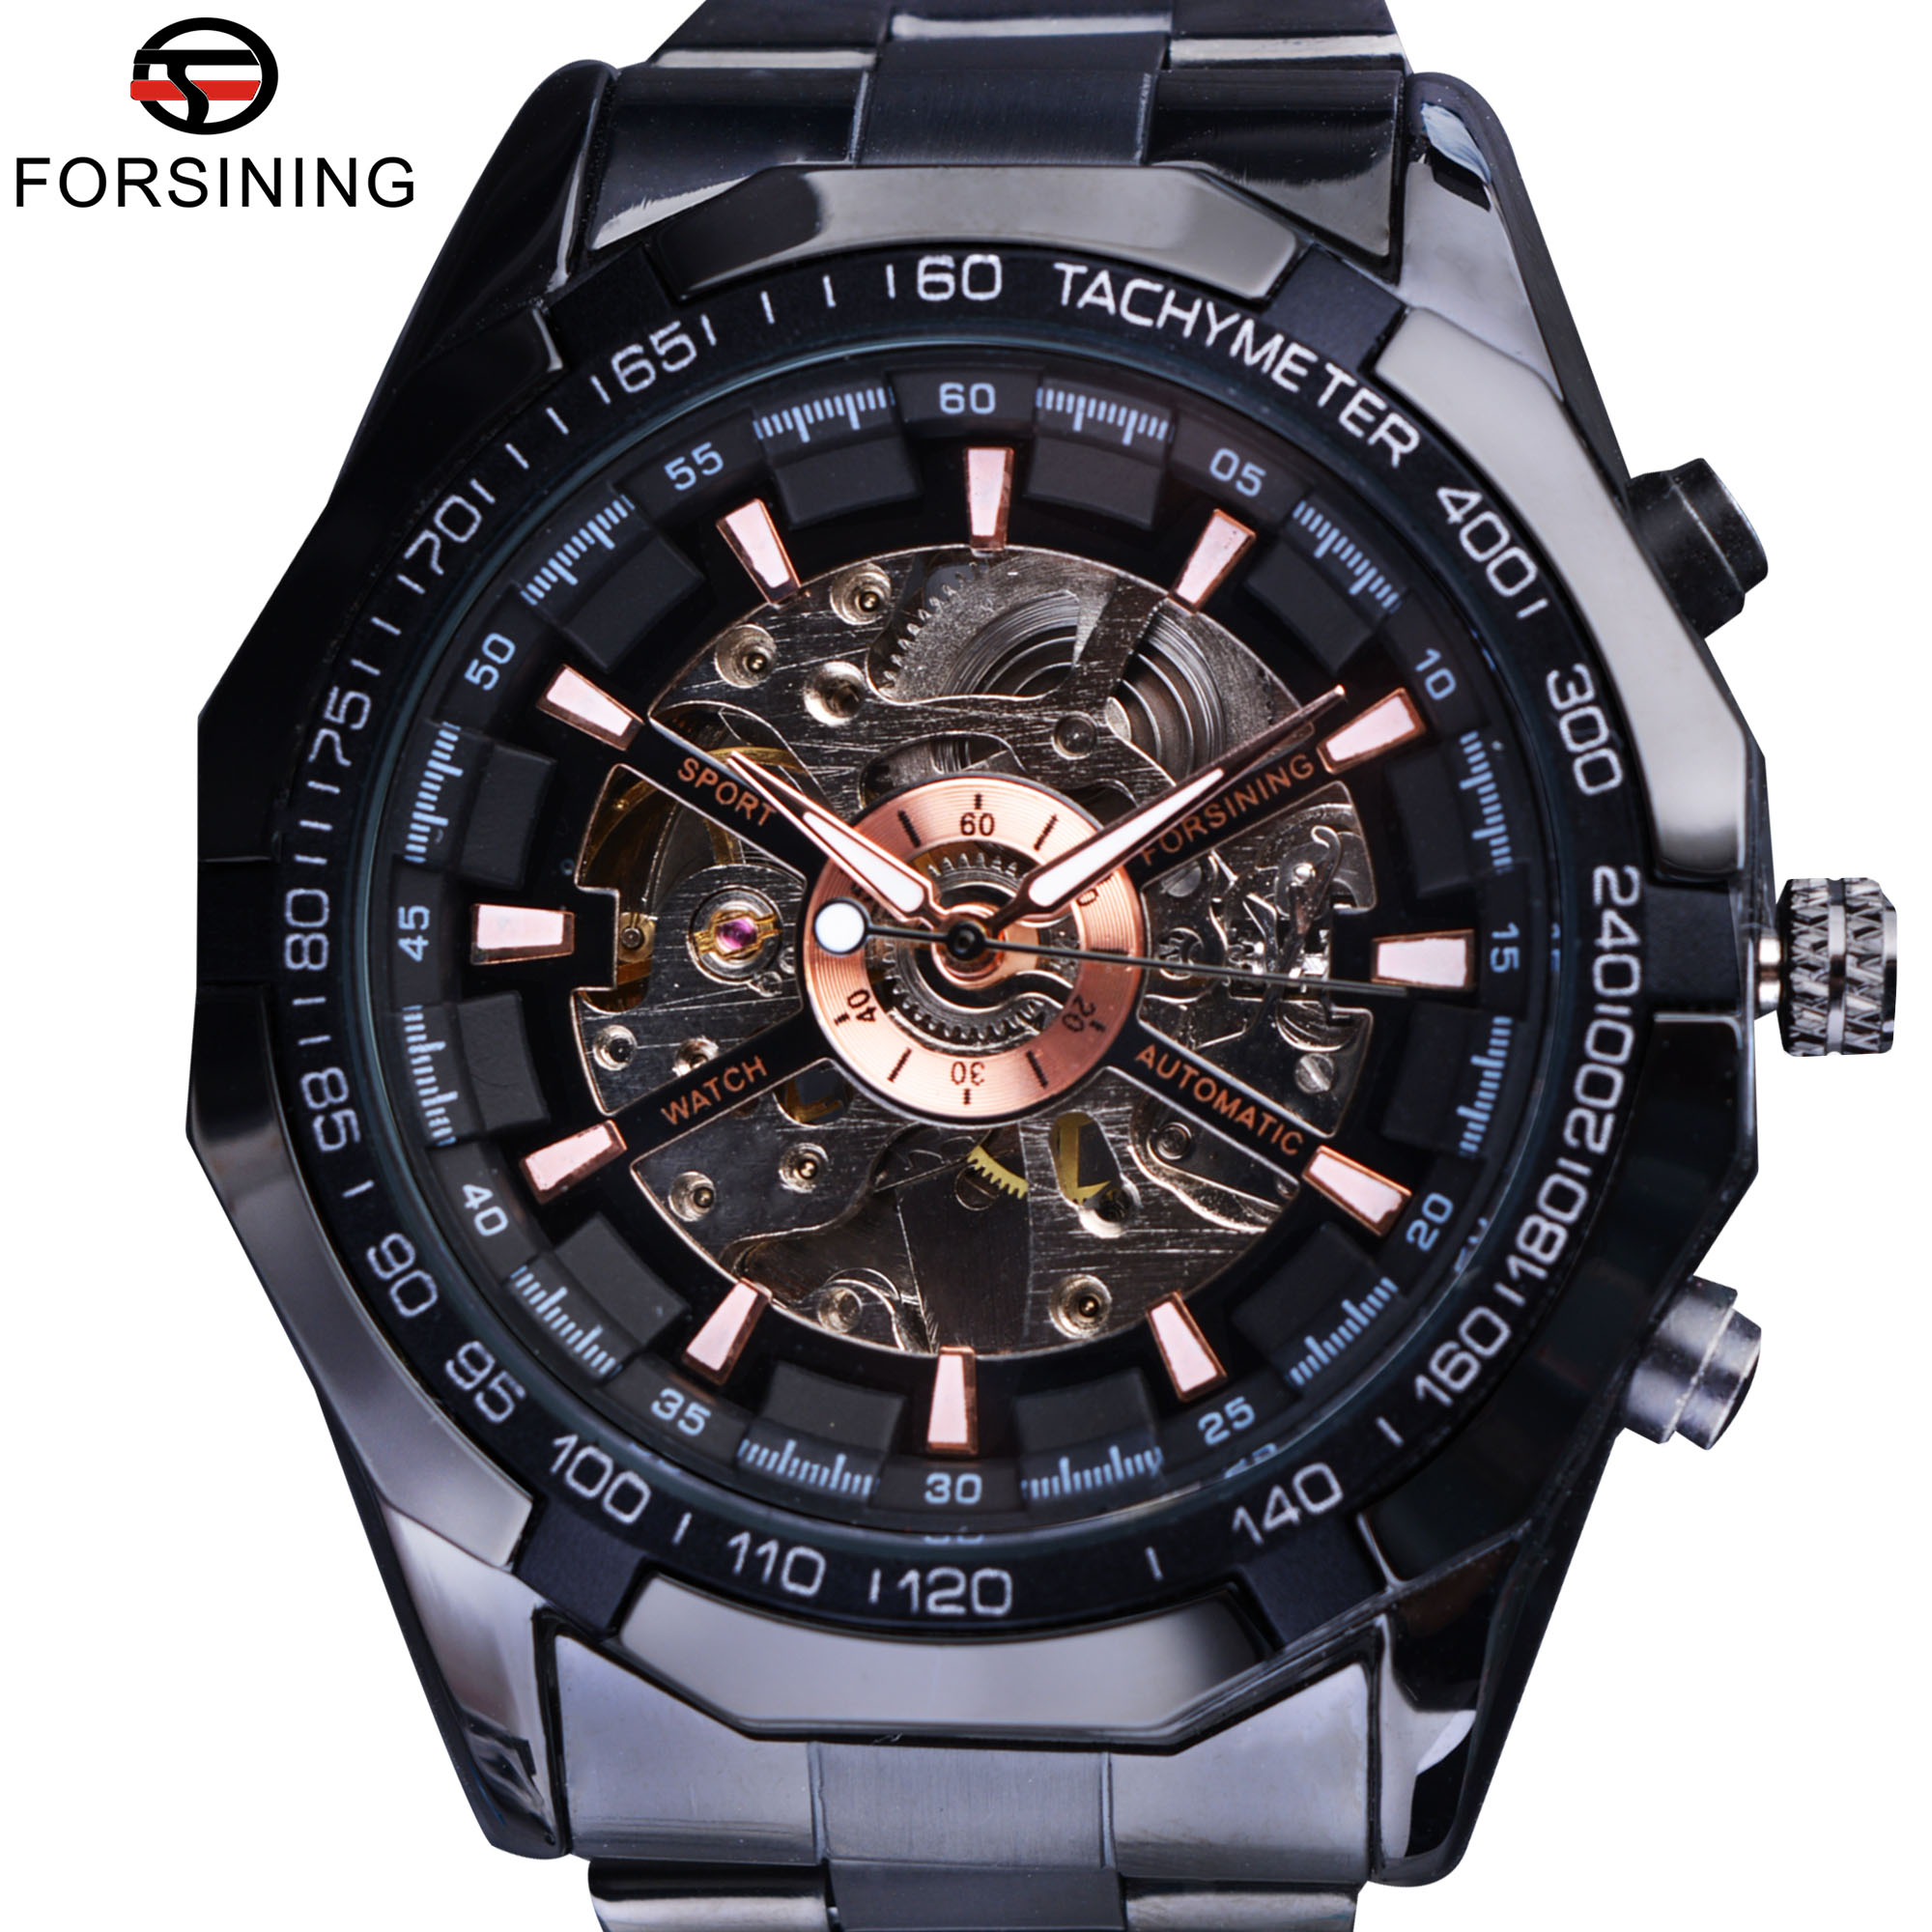 Forsining Sport Racing Design Skeleton Stainless Steel Black Golden Dial Top Brand Luxury Watches Men Wristwatch Automatic WatchForsining Sport Racing Design Skeleton Stainless Steel Black Golden Dial Top Brand Luxury Watches Men Wristwatch Automatic Watch